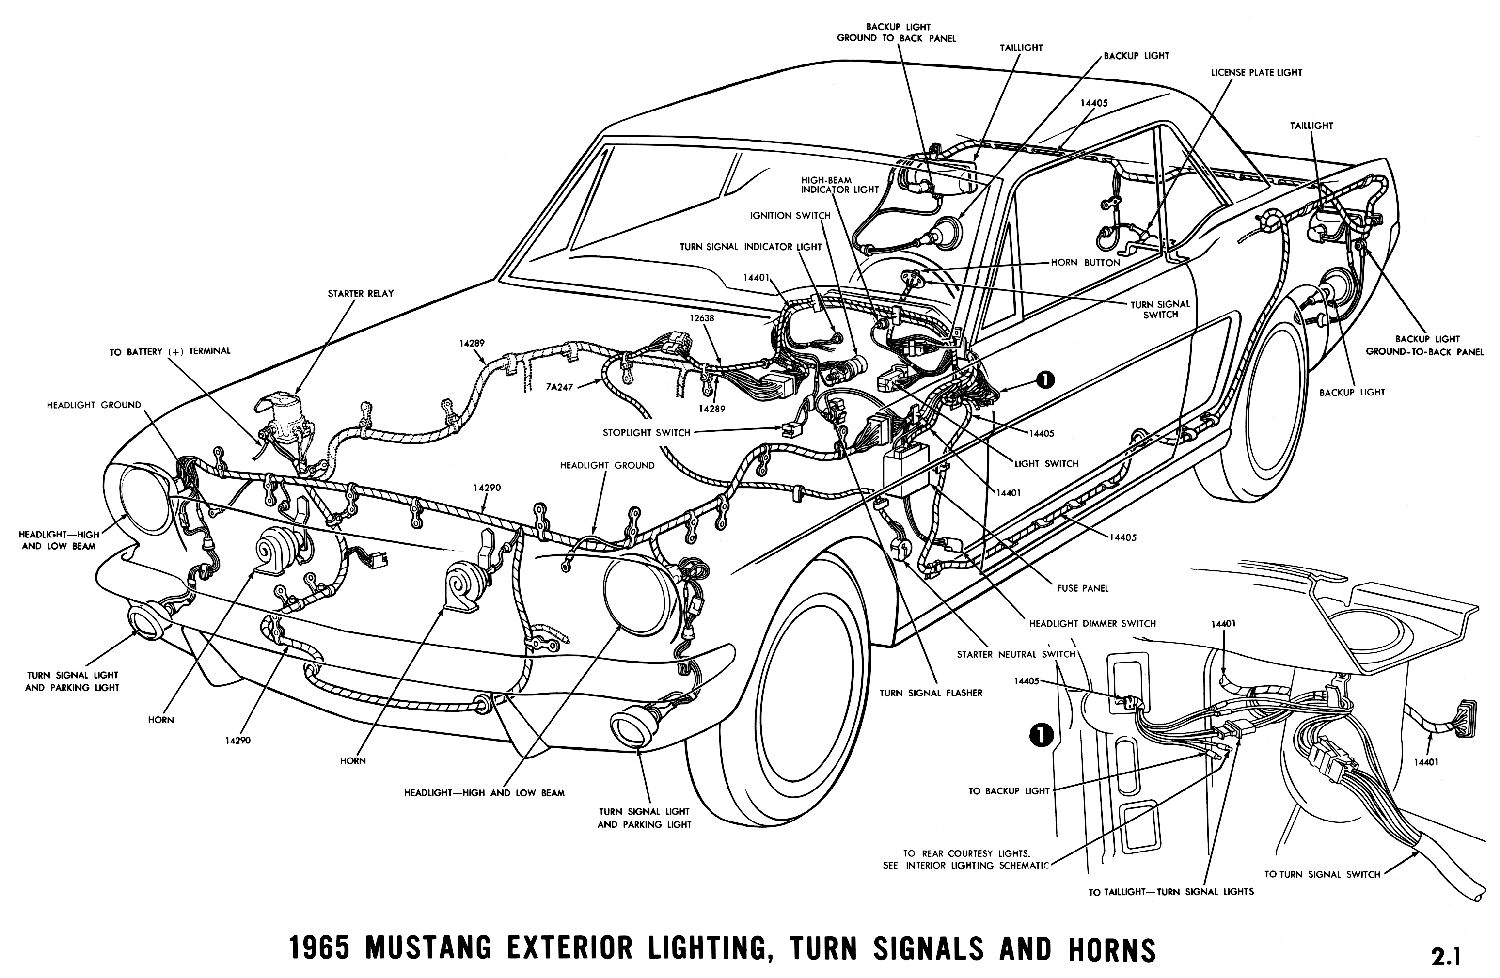 1965d 1965 mustang wiring diagrams average joe restoration 1969 mustang alternator wiring diagram at gsmportal.co